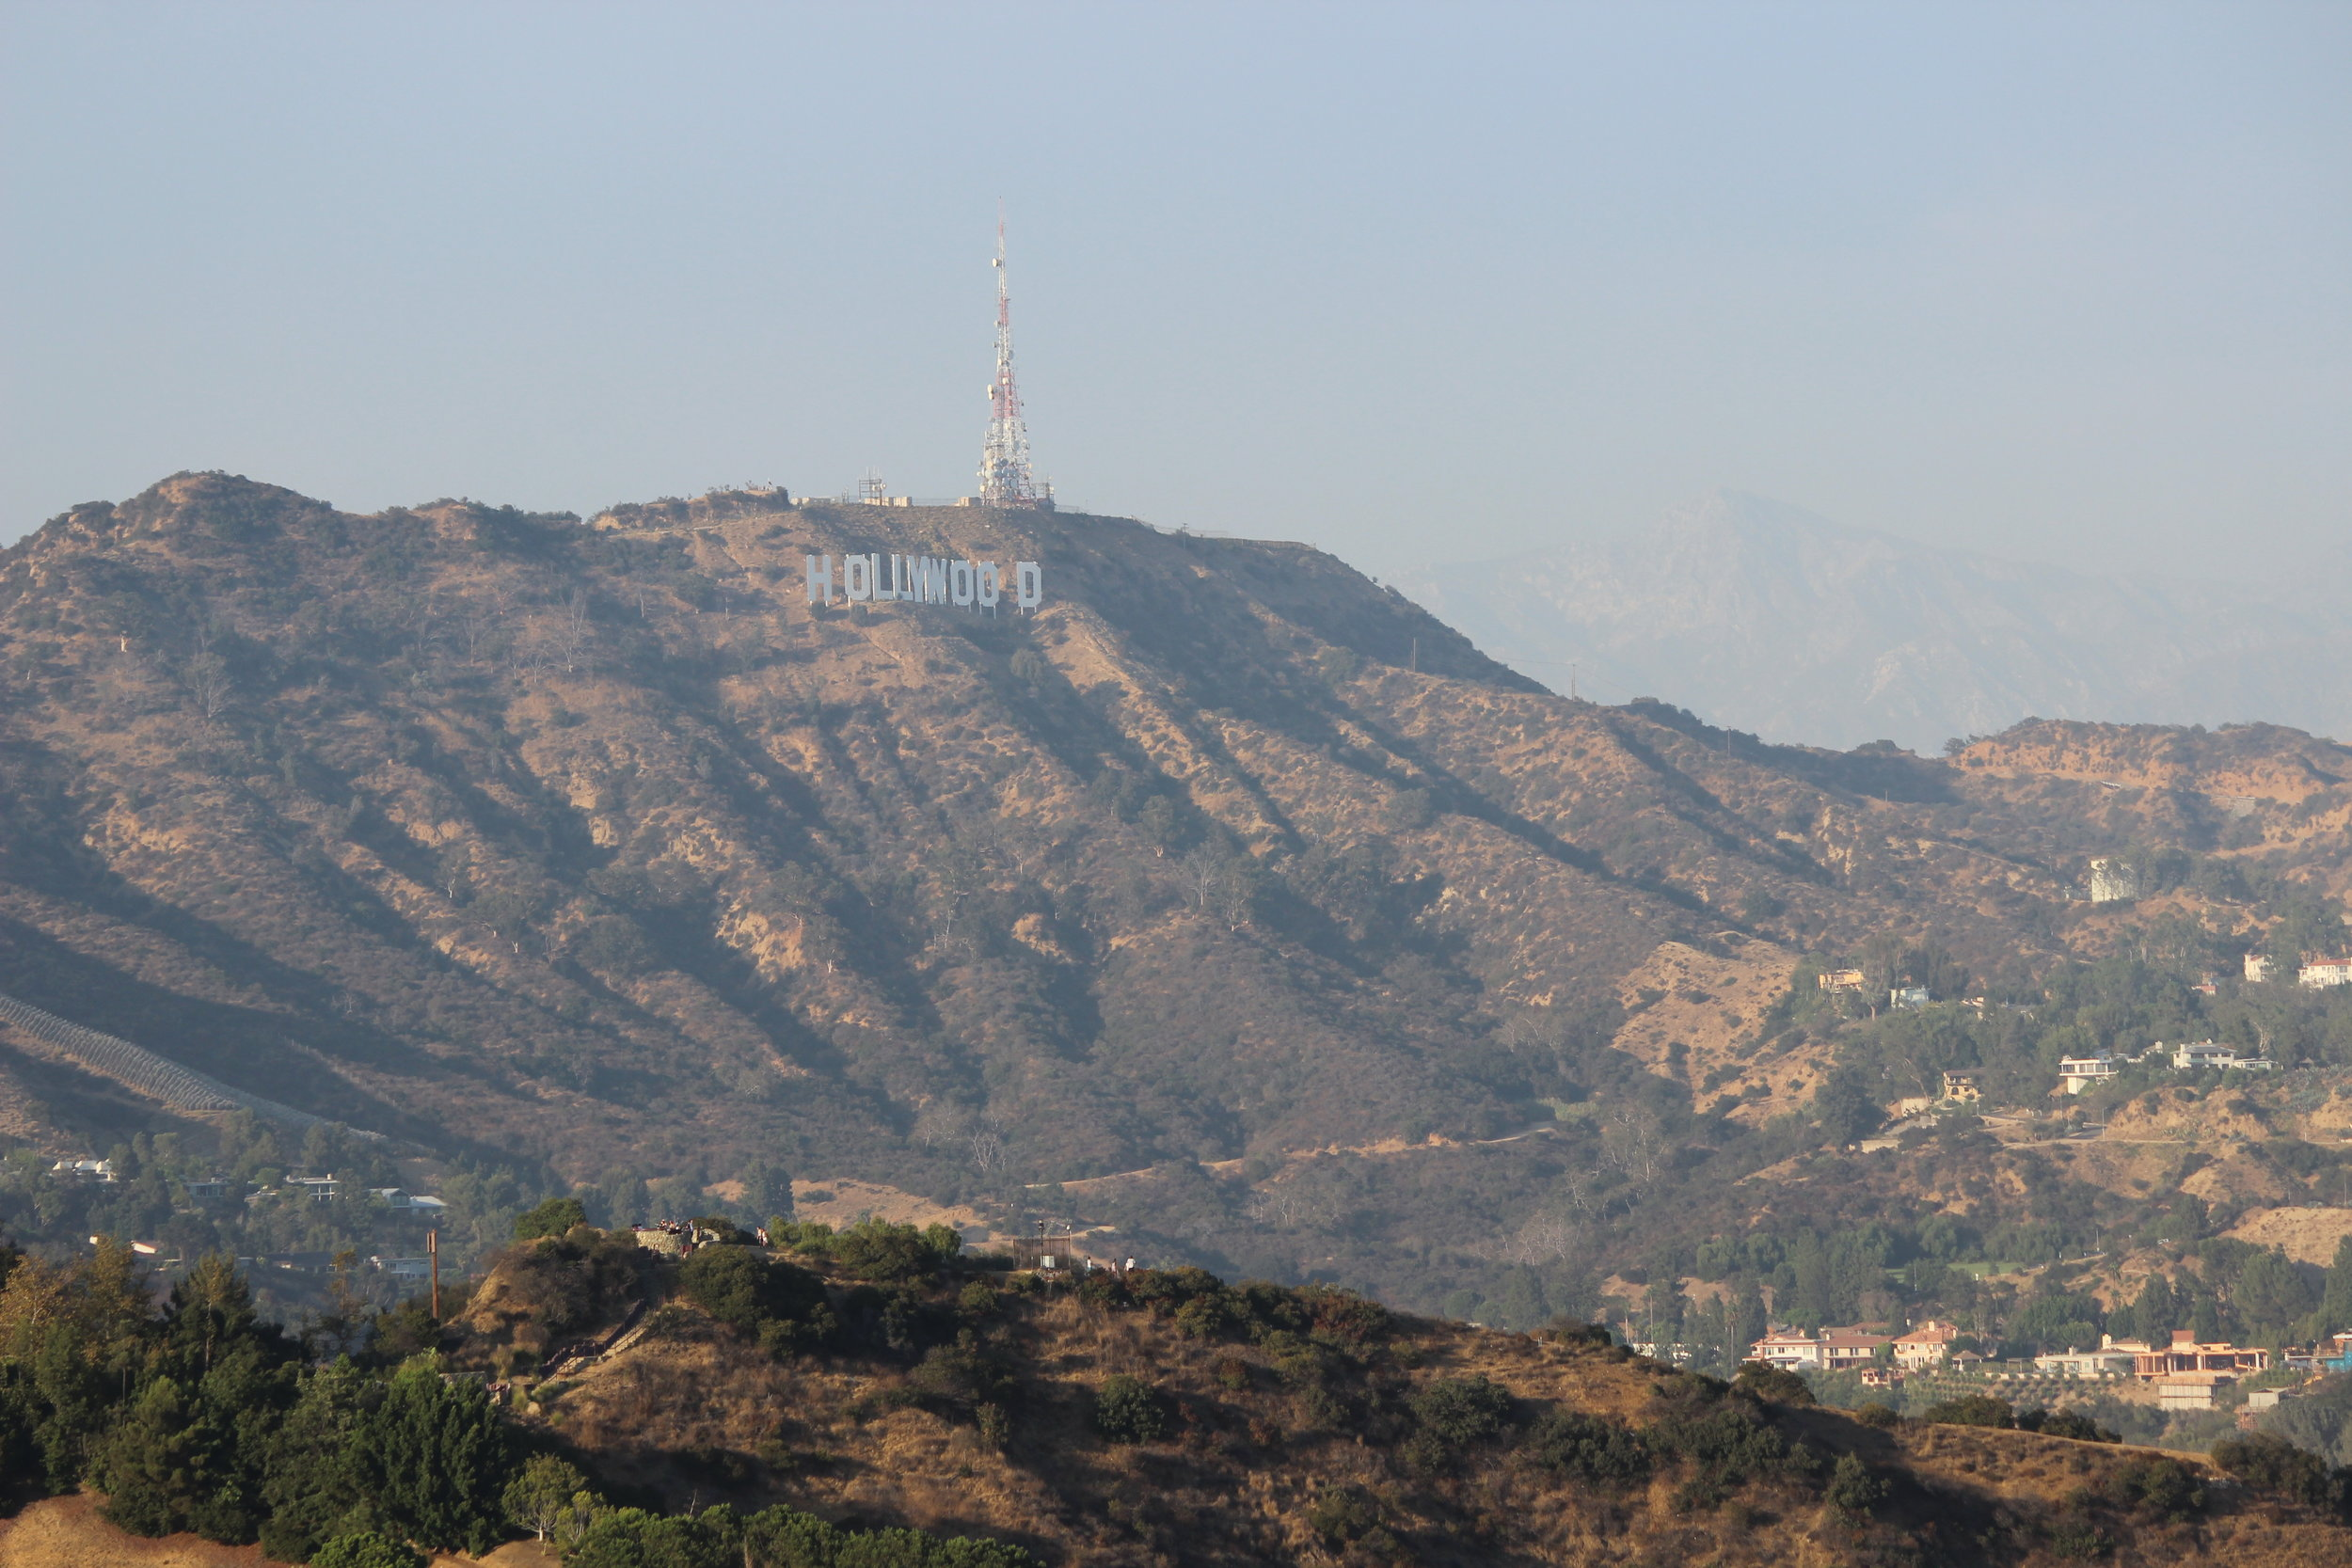 The evocative 'Hollywood' sign